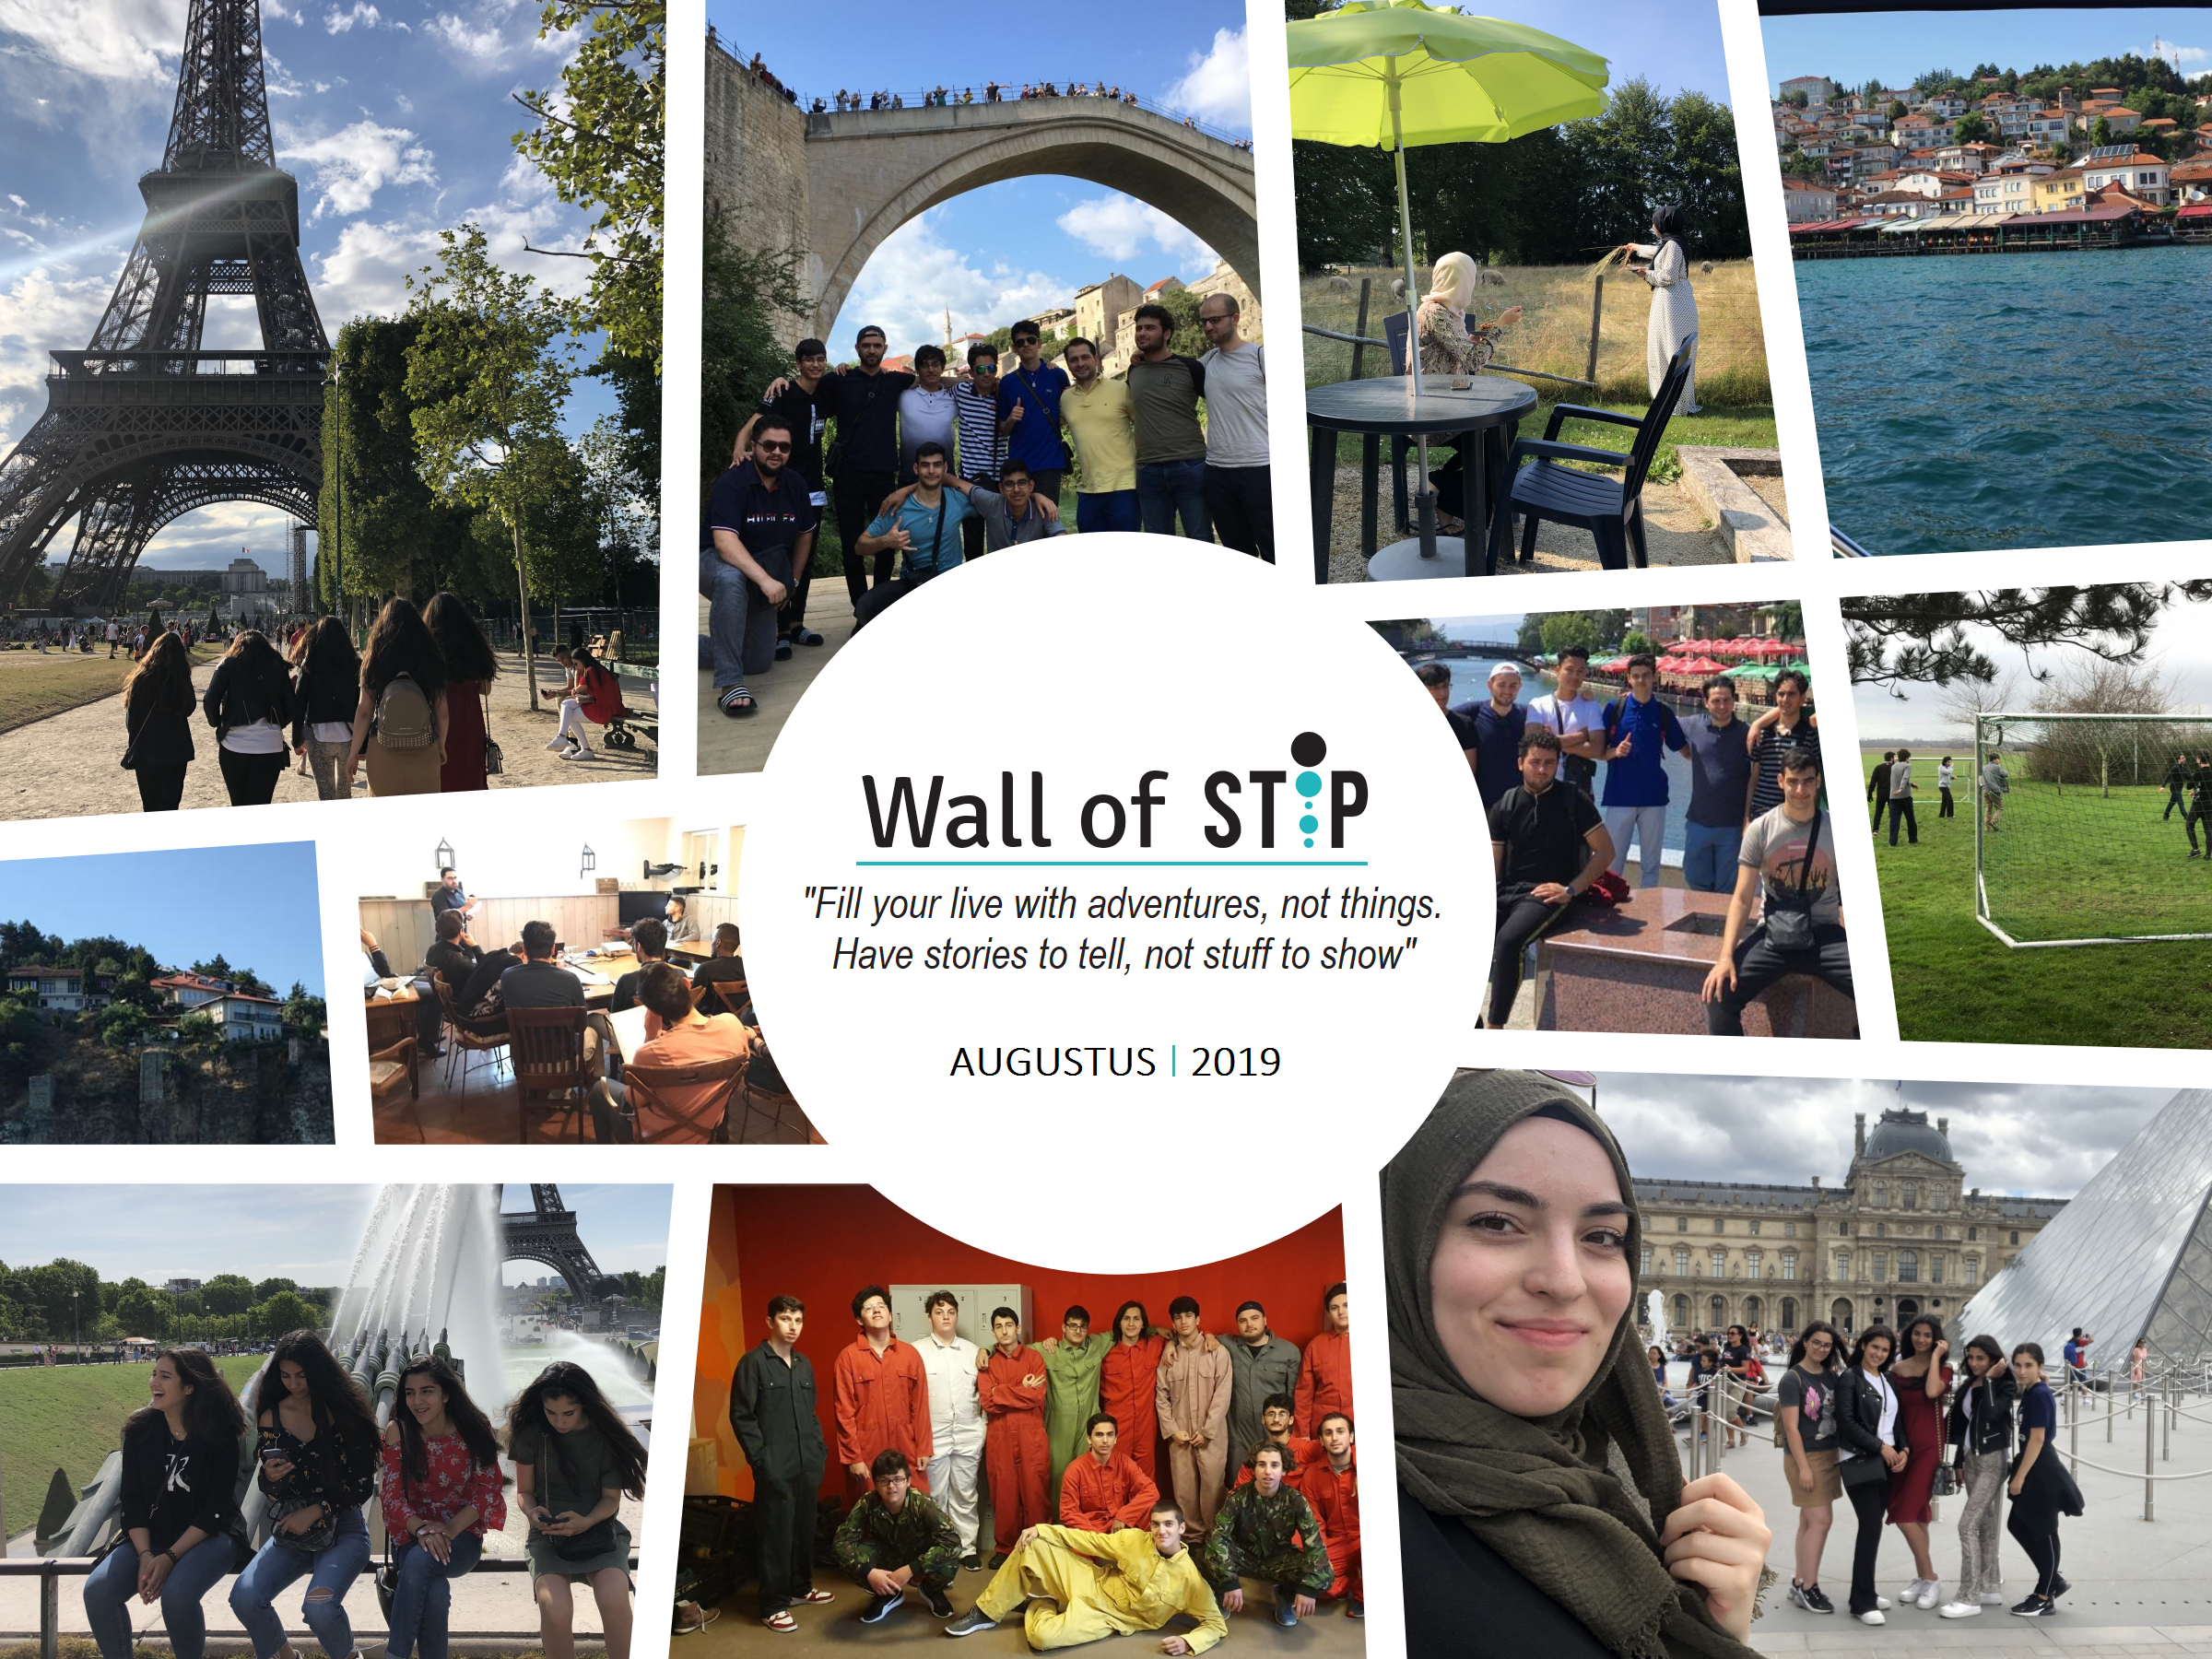 Wall of Stip - Augustus 2019